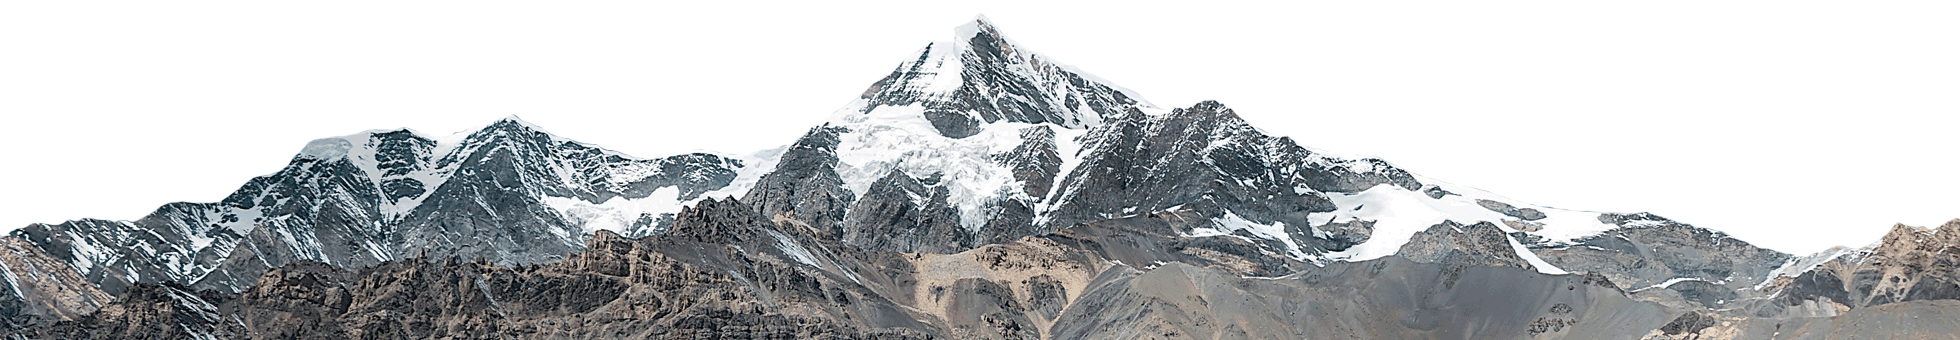 Everest Népal